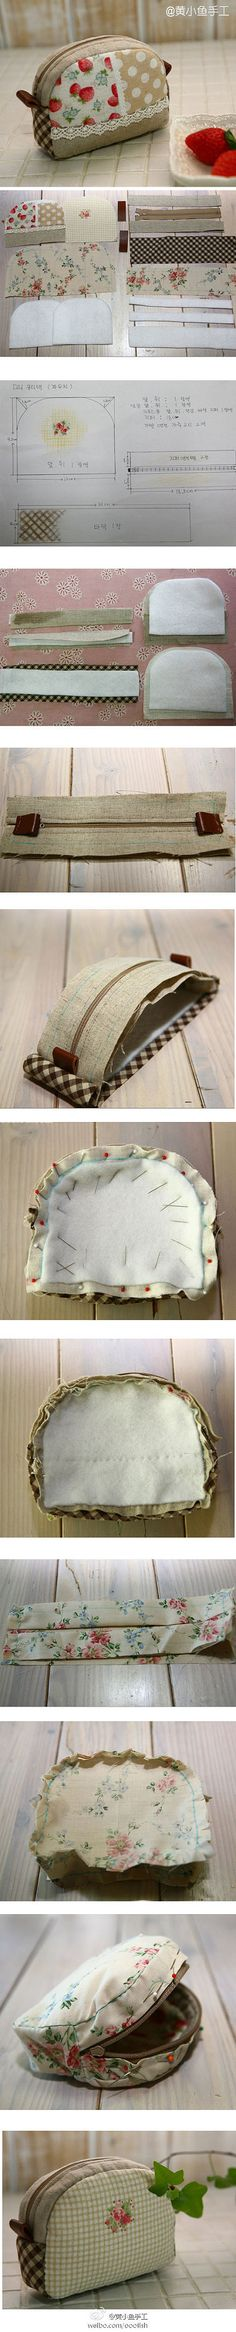 Cute pouch photo tutorial.